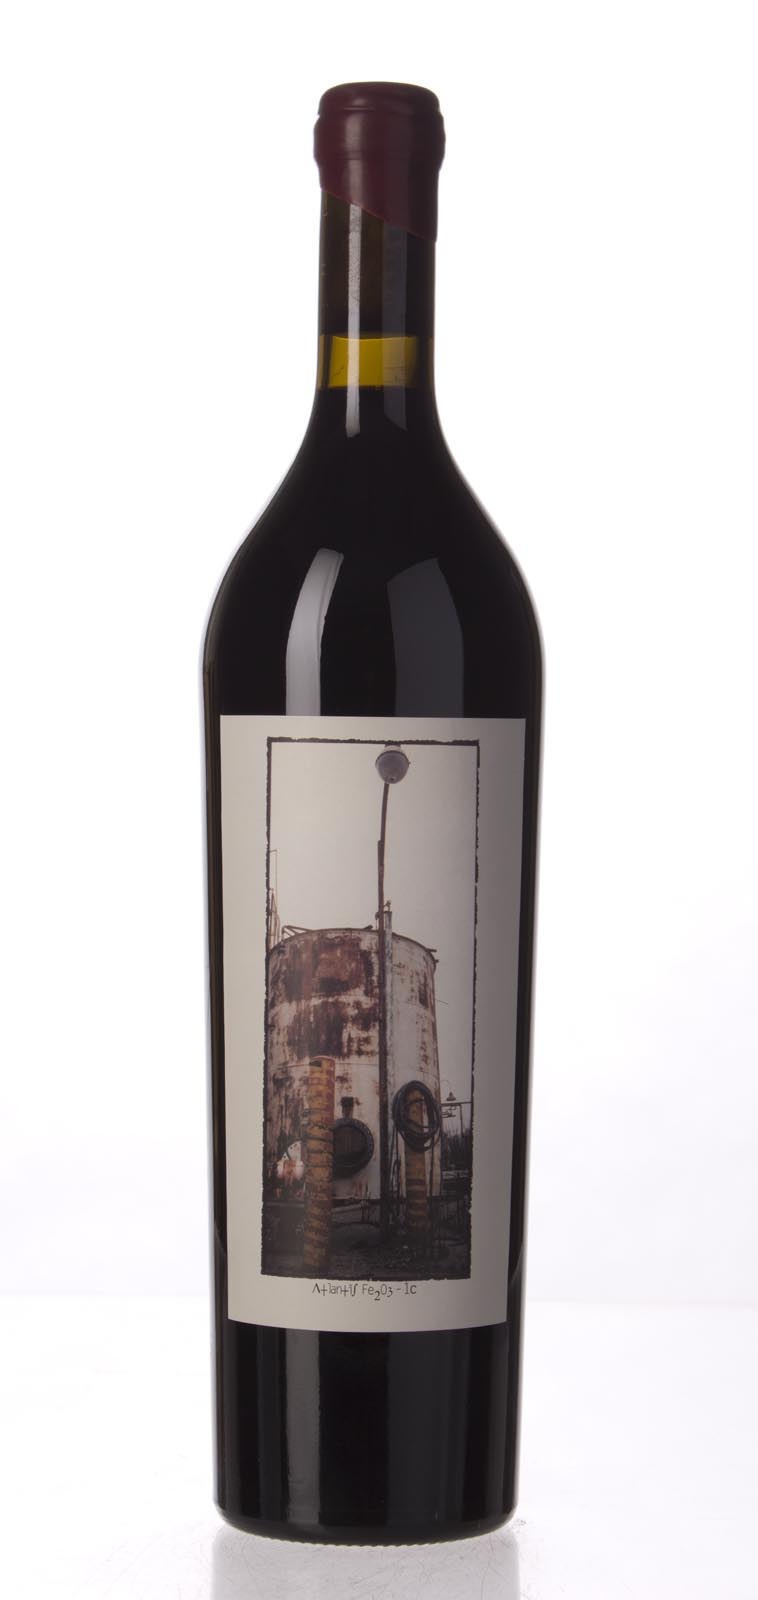 Sine Qua Non Syrah Atlantis Fe2O3 1c 2005, 750mL (WA100) from The BPW - Merchants of rare and fine wines.